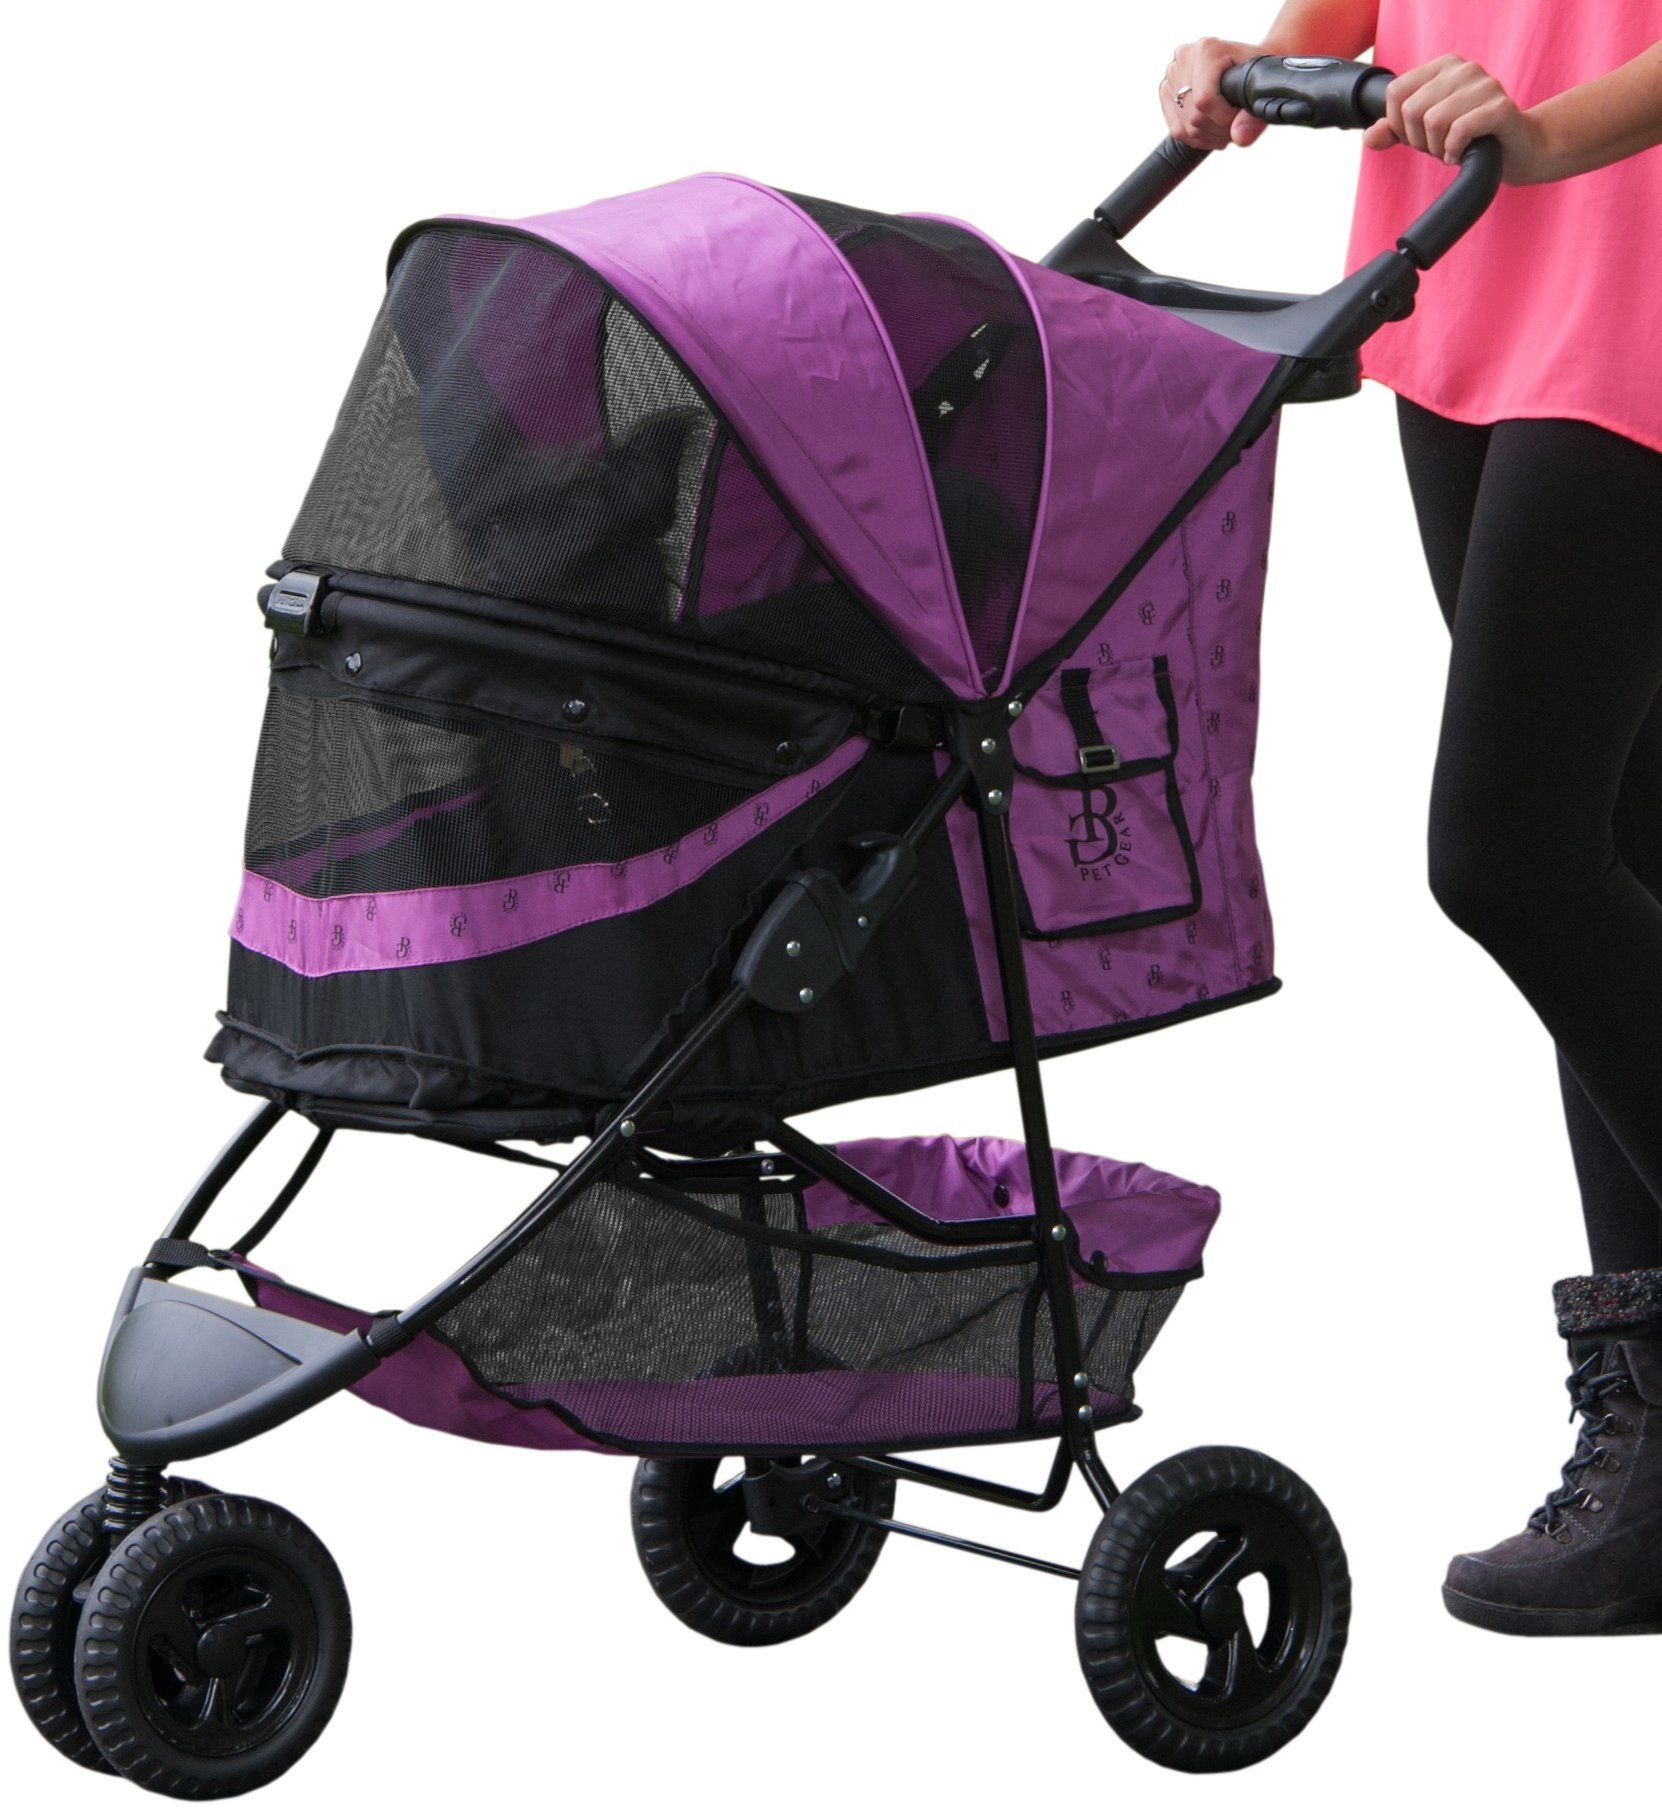 Pet Gear No-Zip Special Edition 3 Wheel Pet Stroller for Cats/Dogs, Zipperless Entry, Easy One-Hand Fold, Removable Liner by Pet Gear (Image #1)